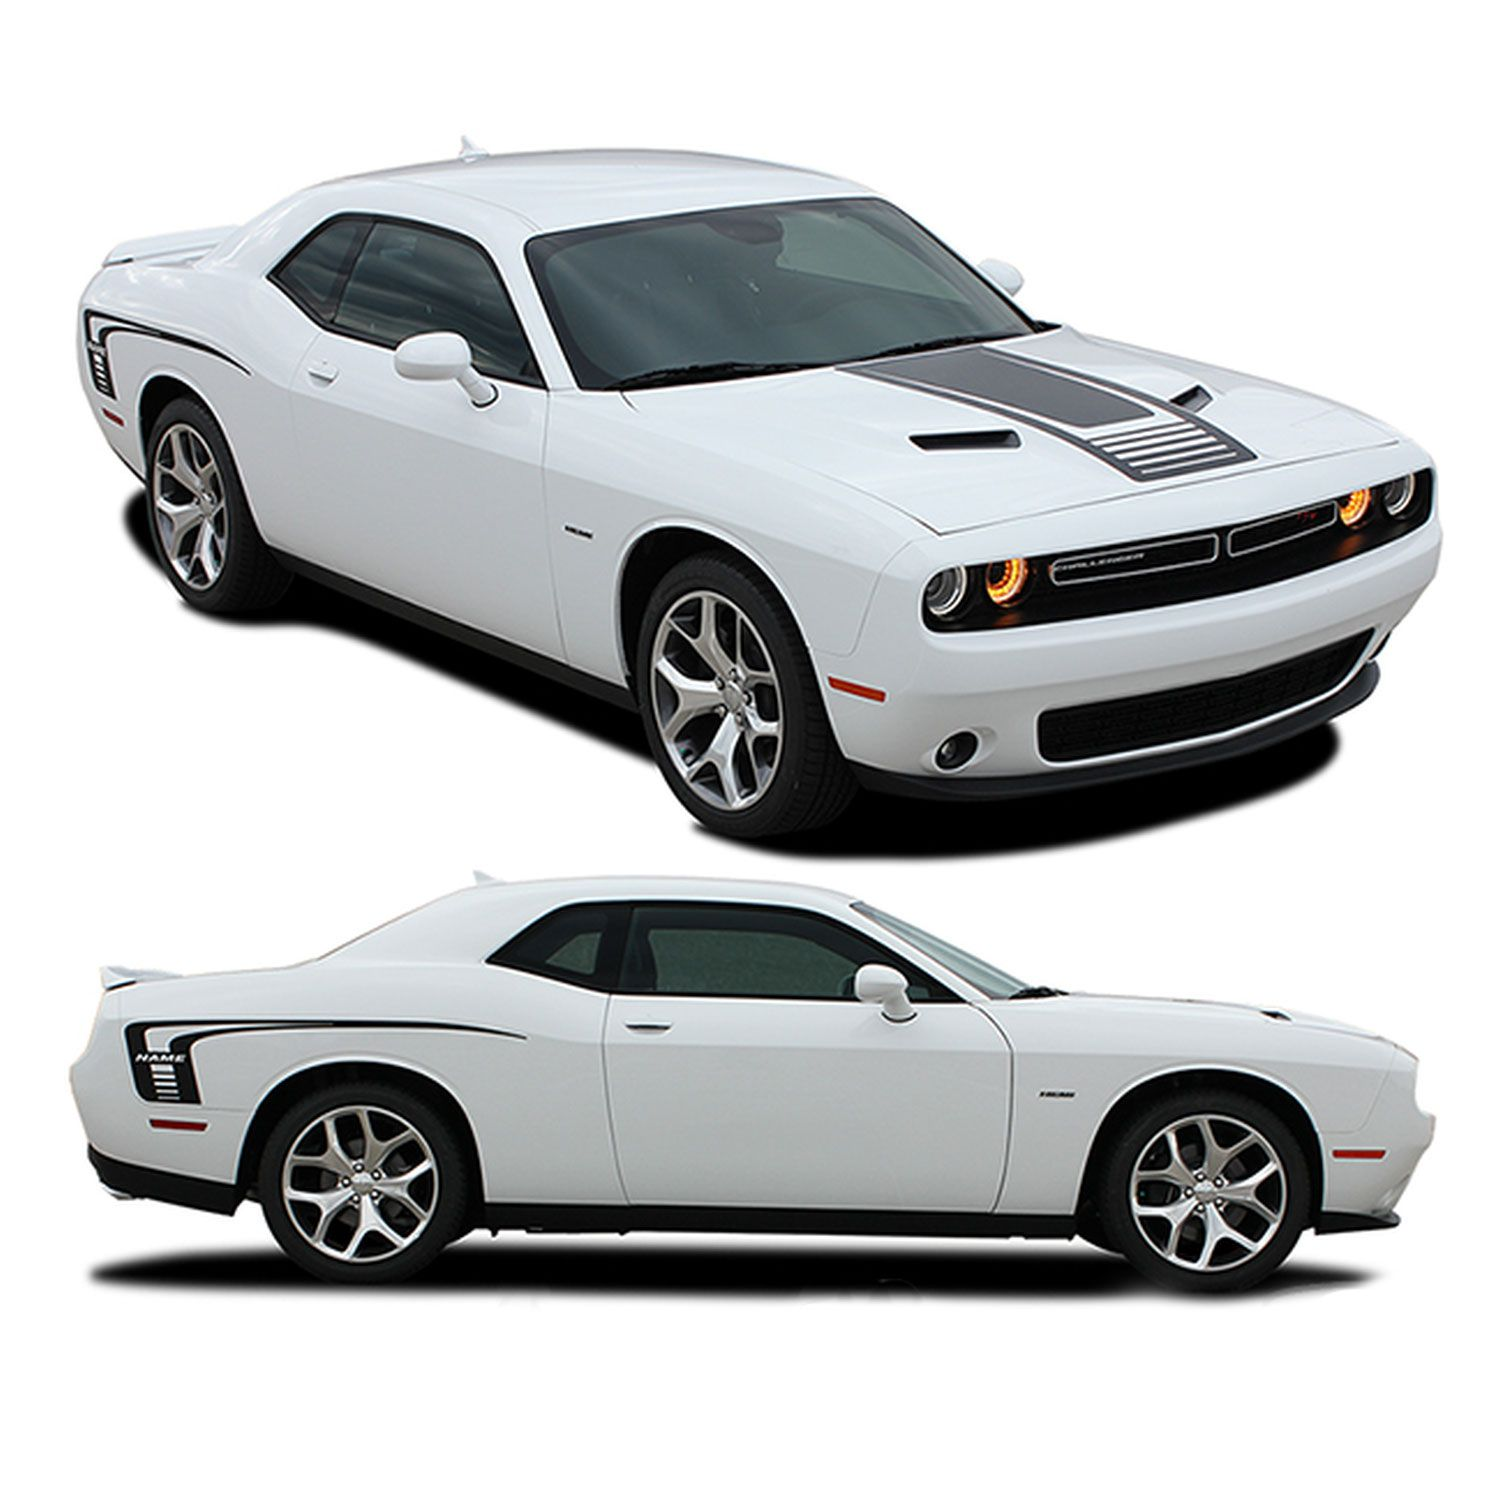 CLASSIC TRACK 2008-2018 Dodge Challenger Side Stripes Graphics 3M Scotchcal